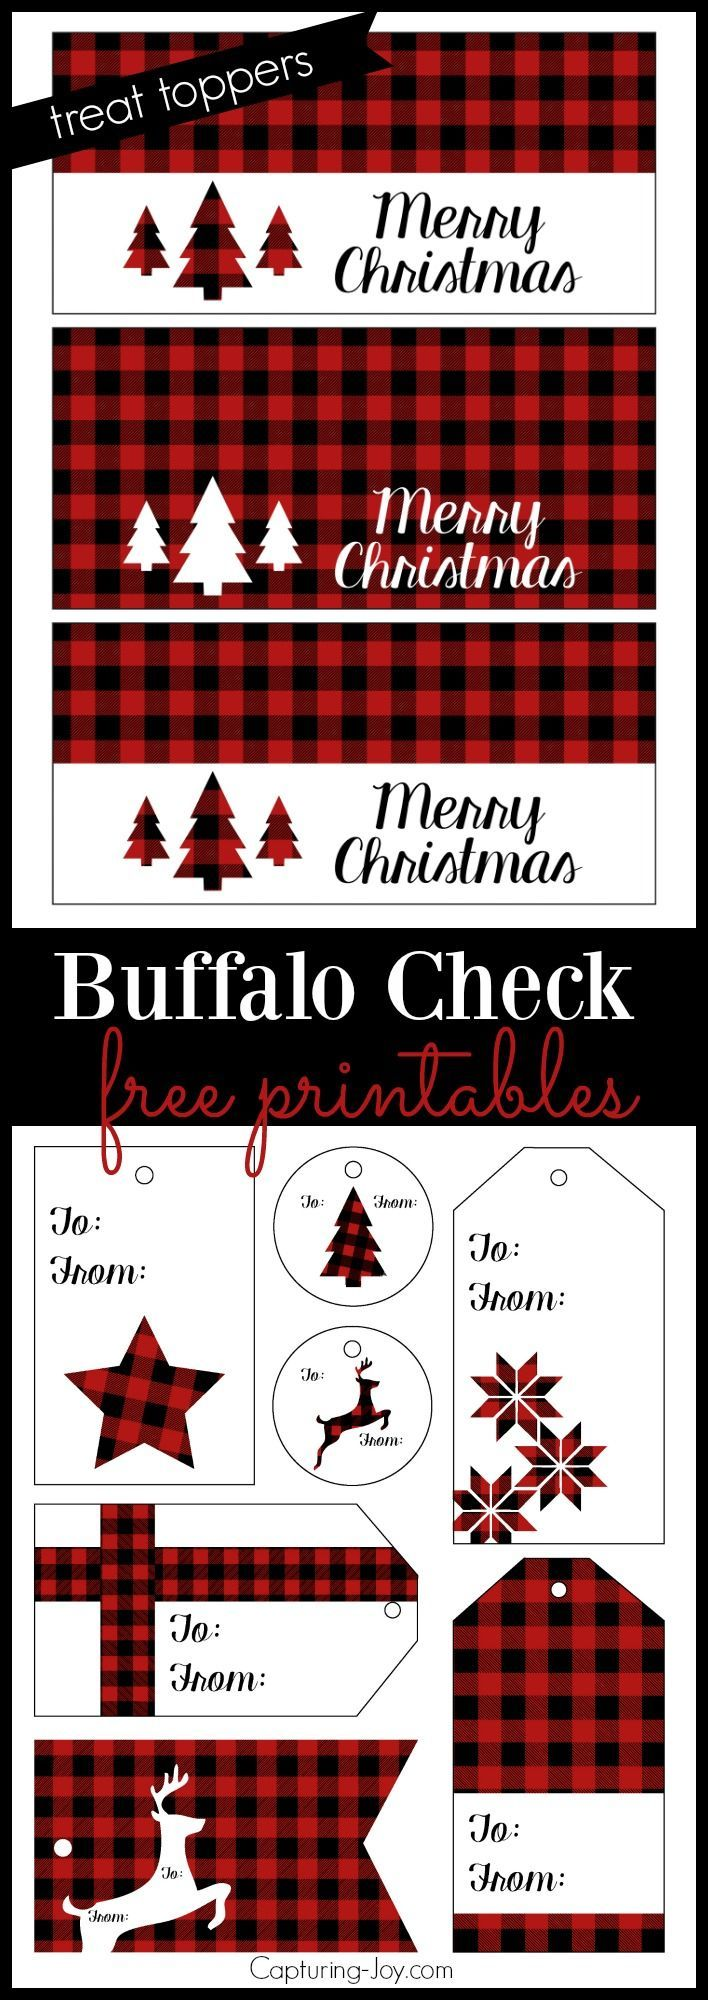 Buffalo check plaid free printables for Christmas Treat Toppers and gift tags!  Grab them on http://Capturing-Joy.com!